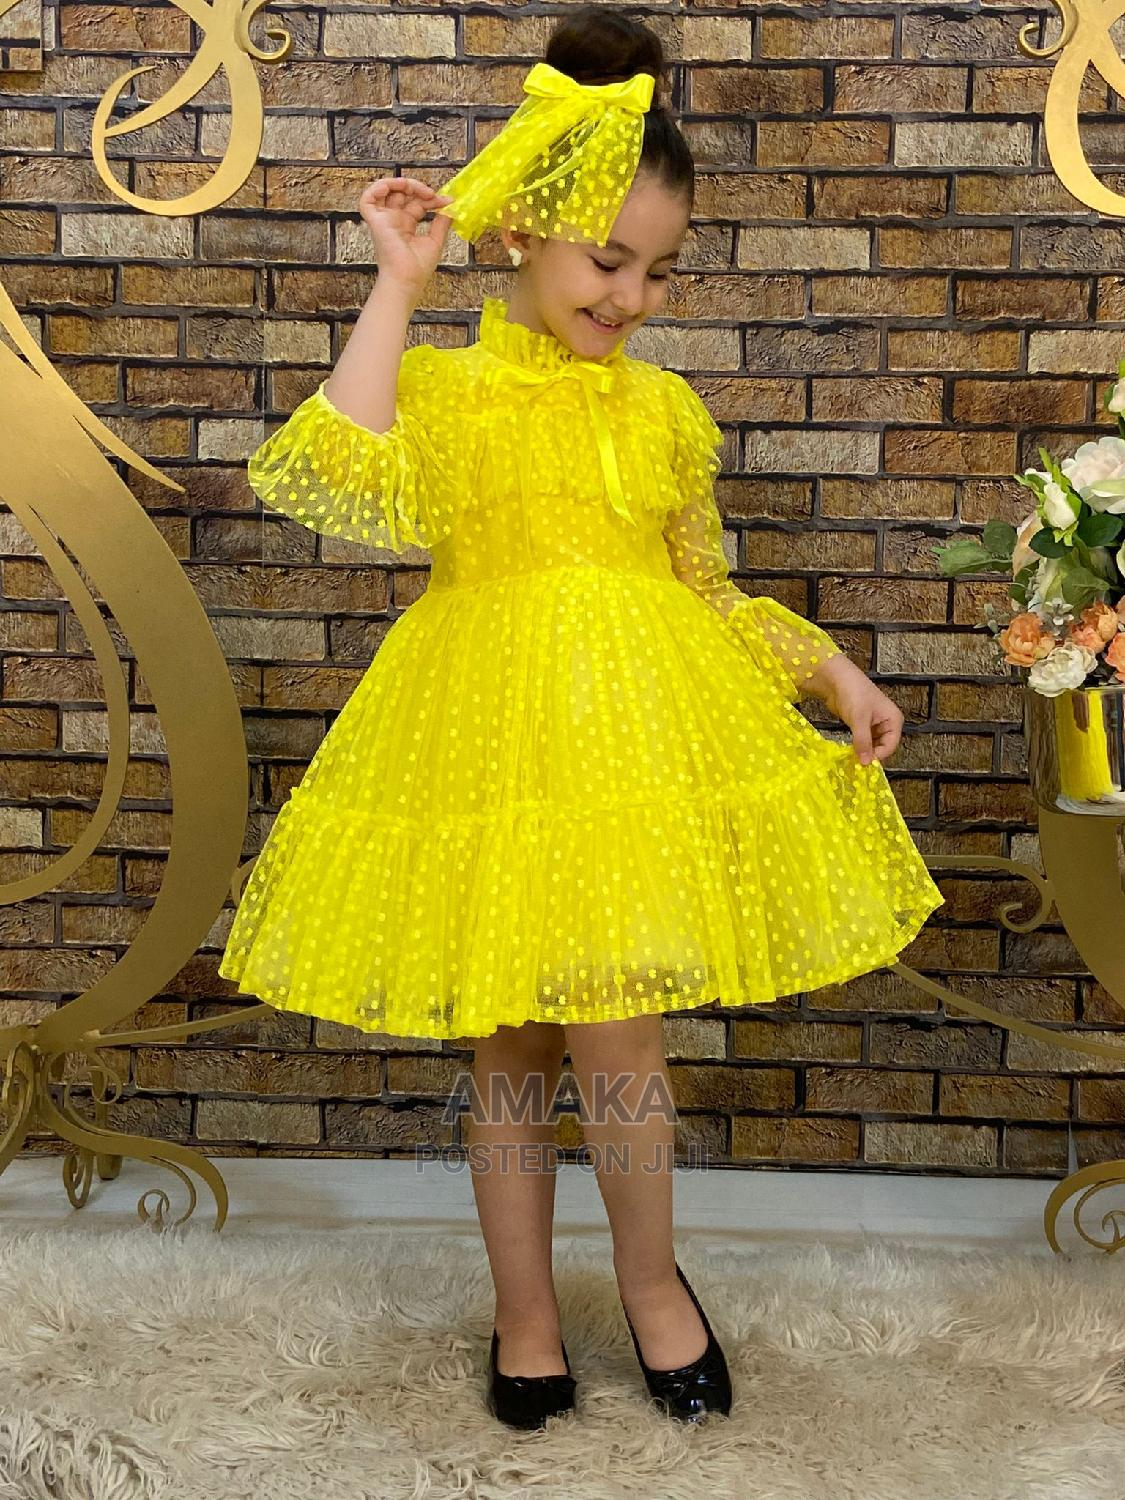 Turkey Material | Children's Clothing for sale in Tarkwa Bay Island, Lagos State, Nigeria